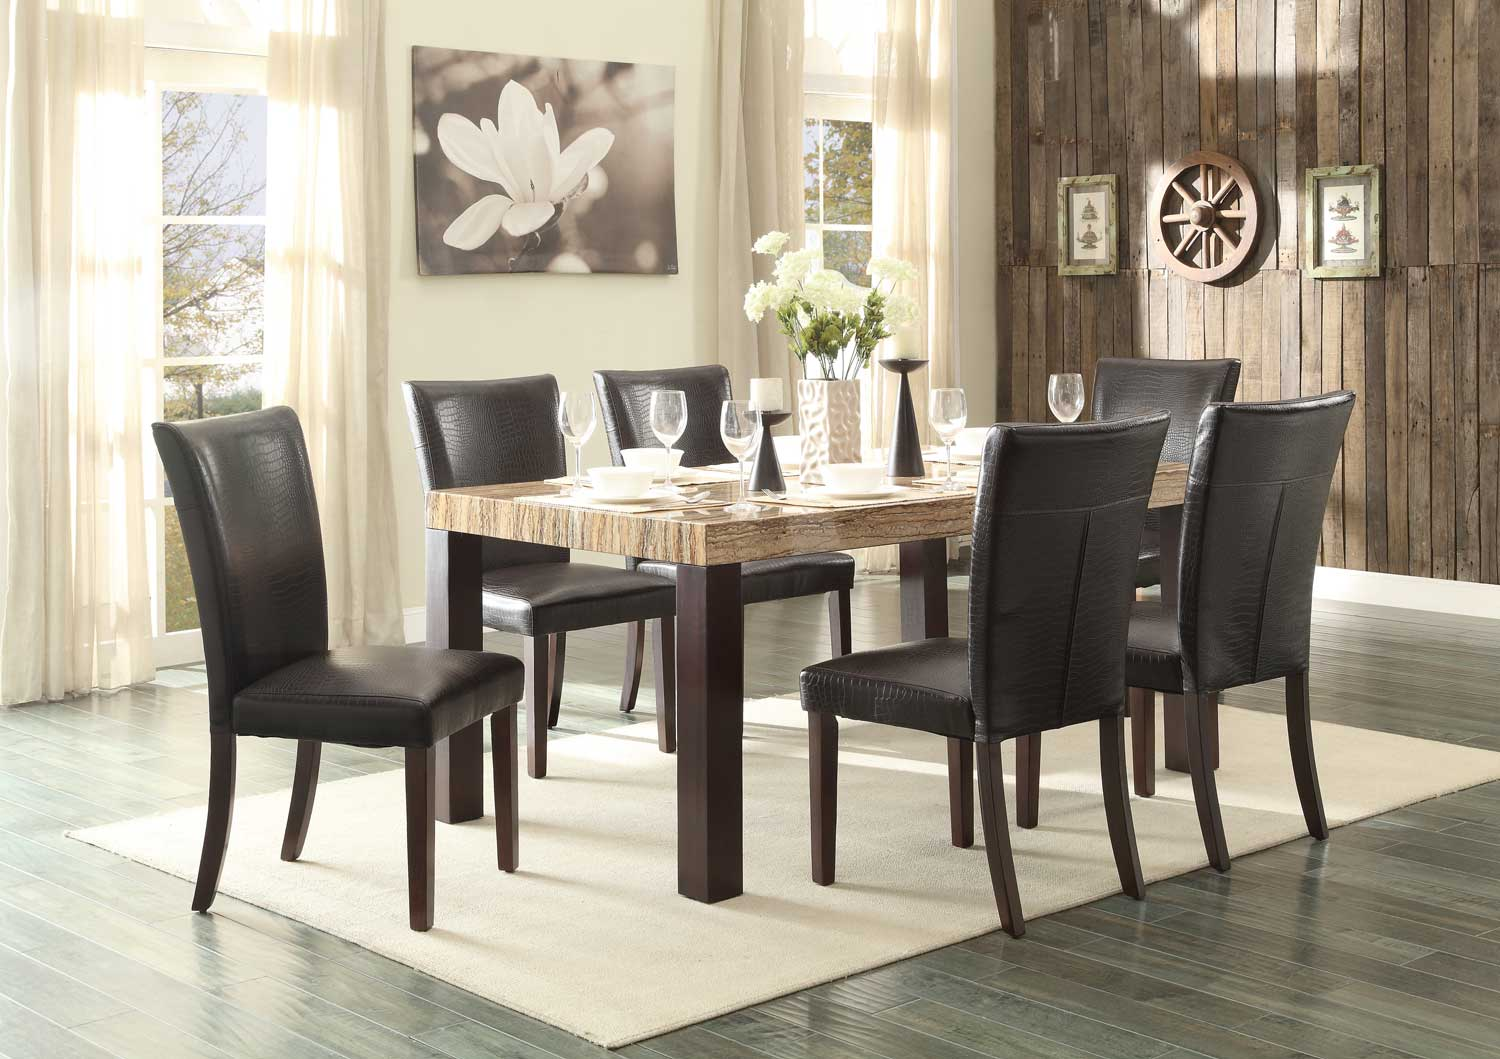 Homelegance Robins Dining Set - Dark Cherry - Faux Marble Top